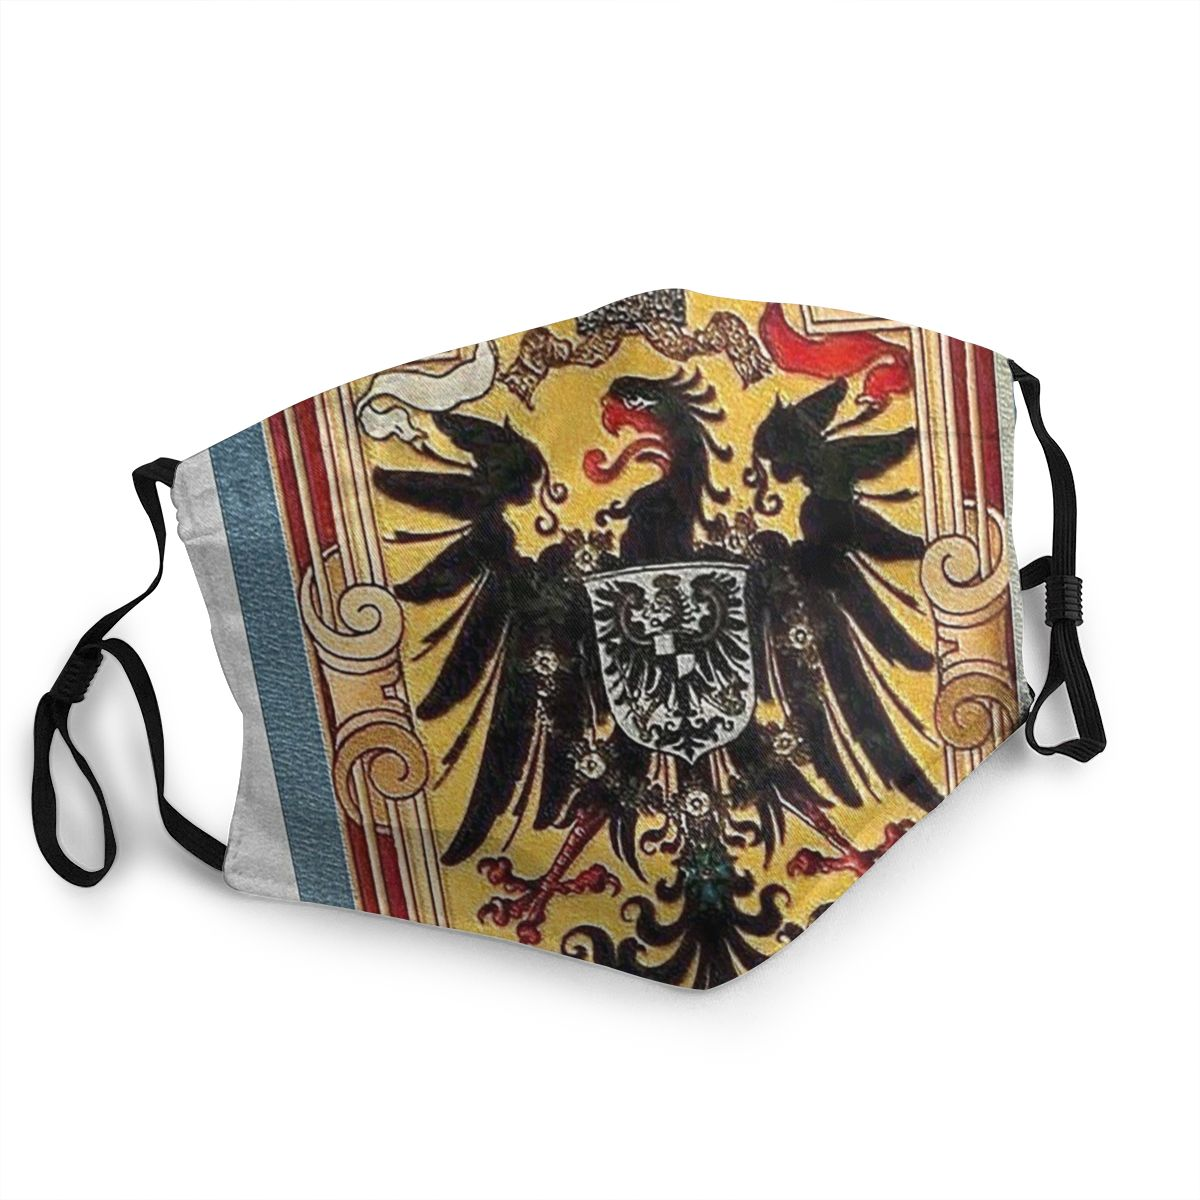 Kaiserzeit German Flags And Eagle Germany Men Women Reusable Mouth Face Mask Anti Haze Dustproof Protection Cover Respirator